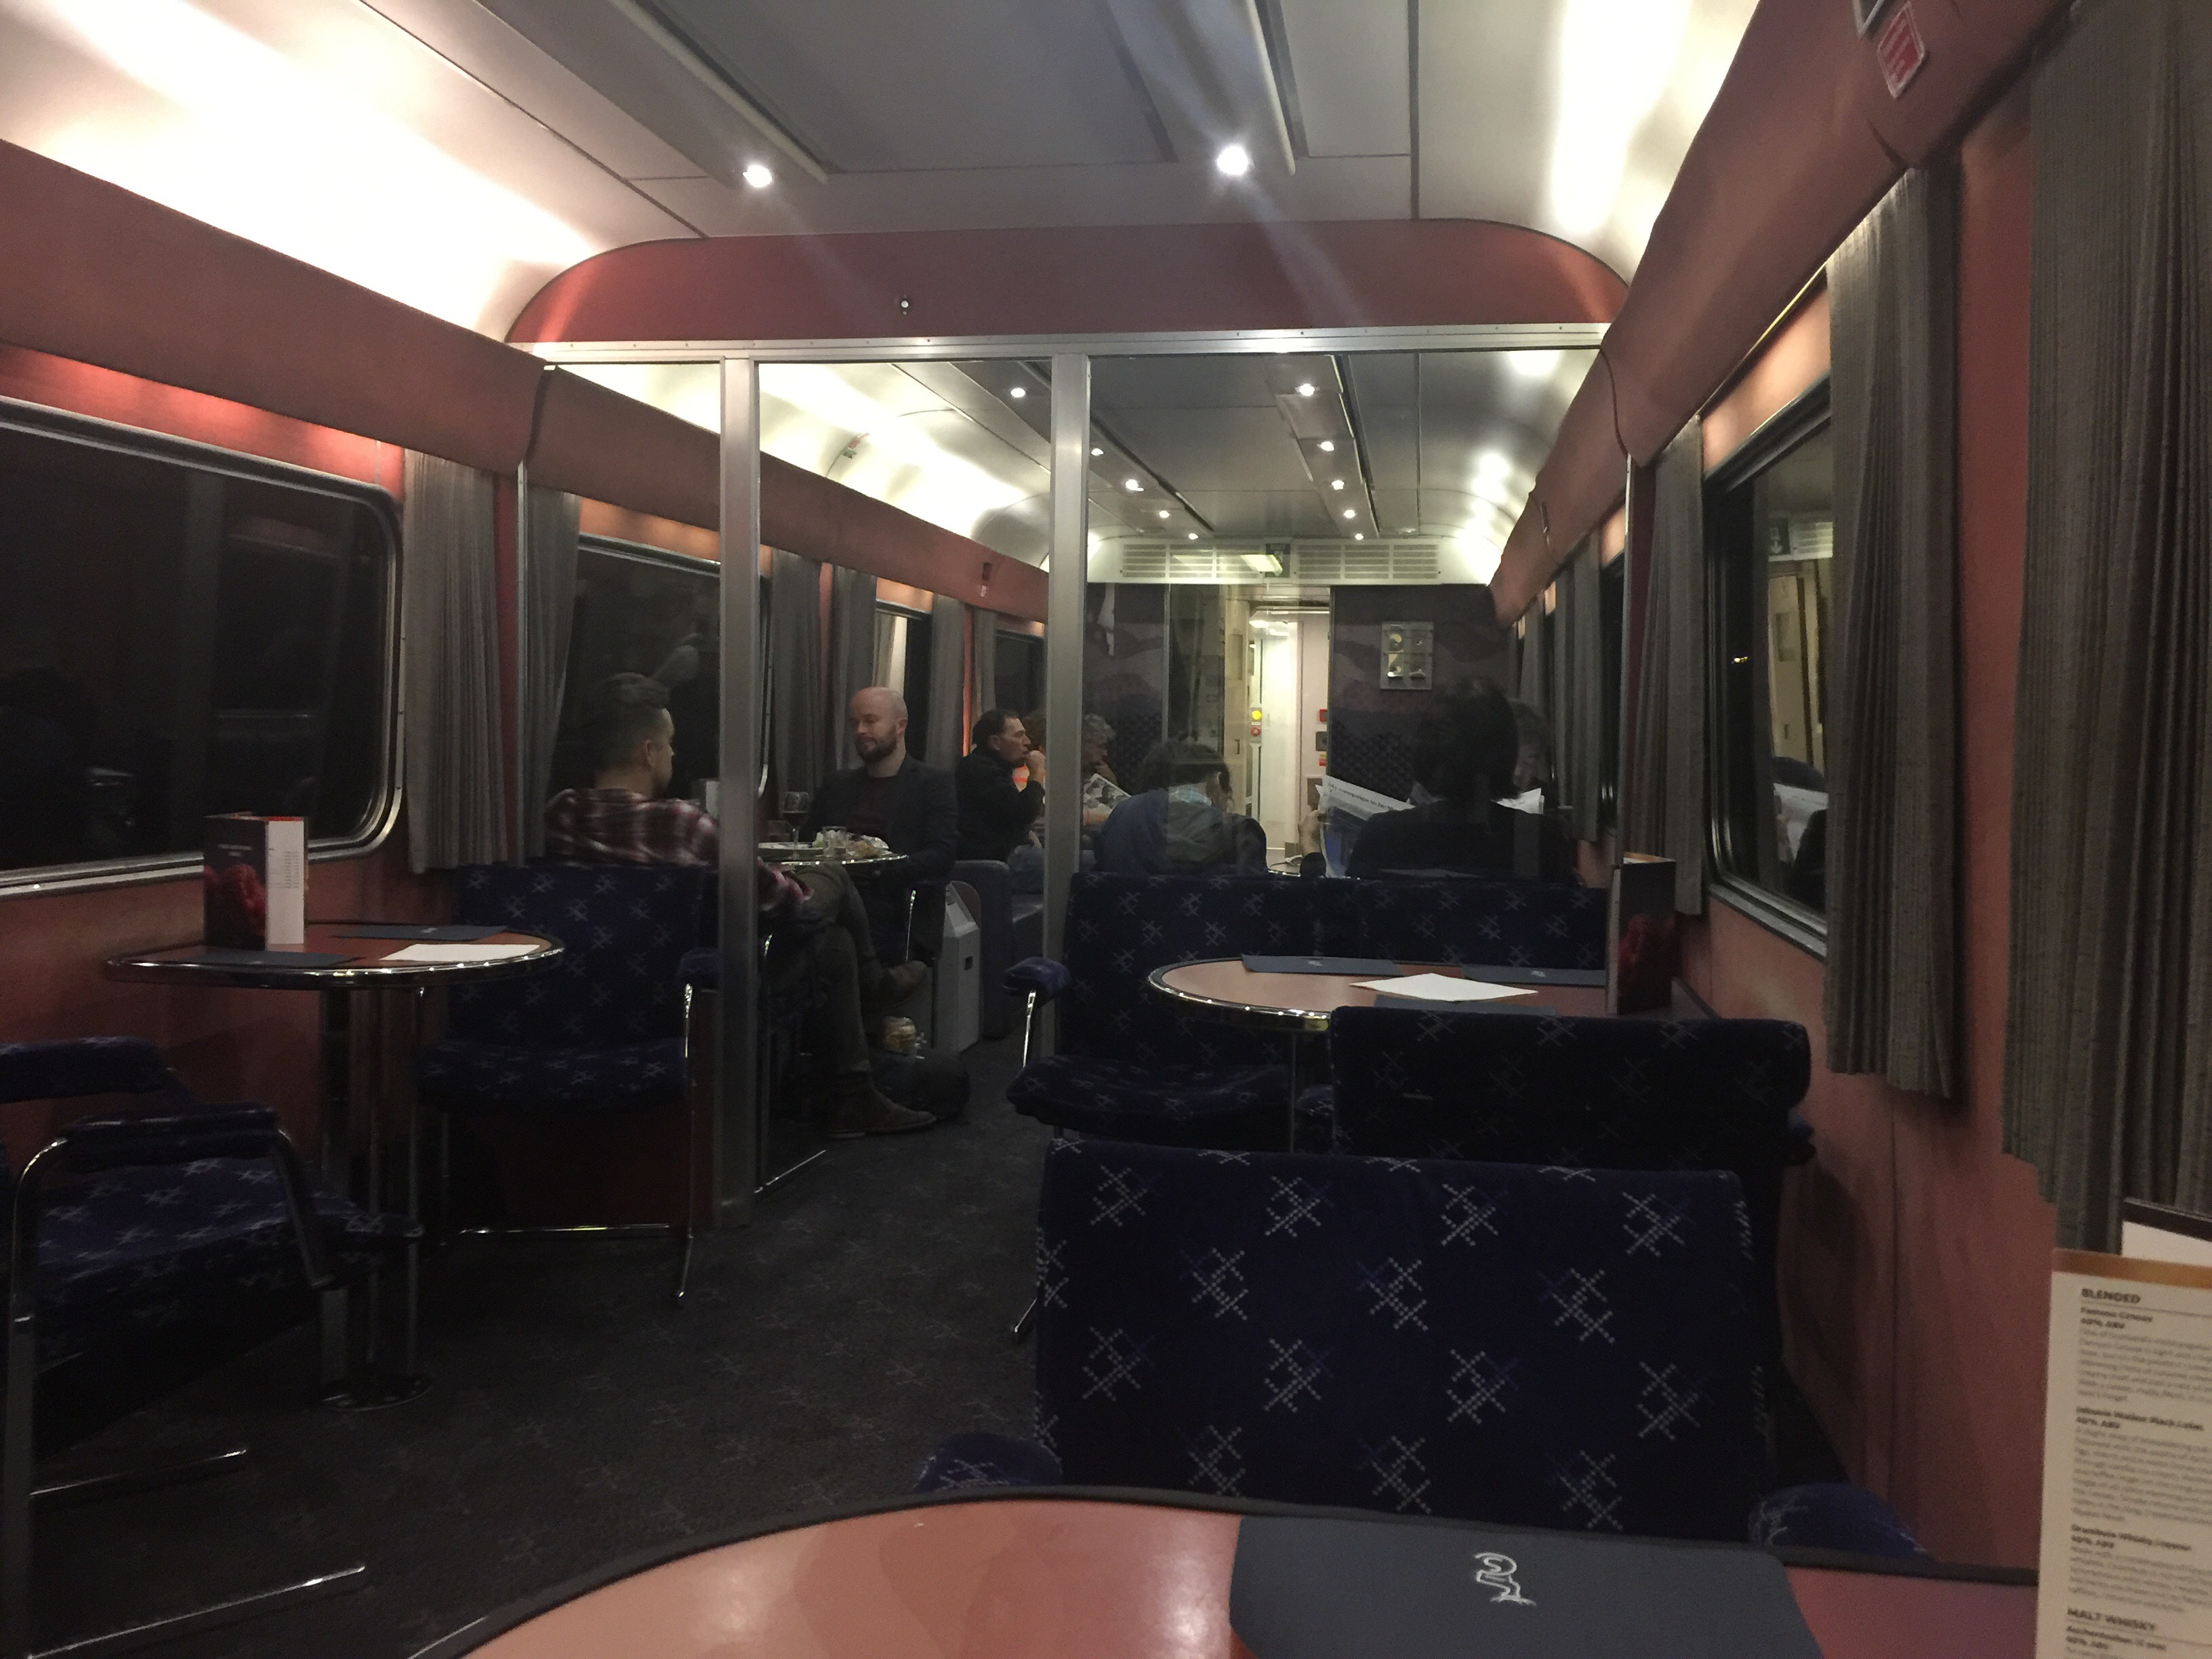 Dining car on the Caledonian sleeper